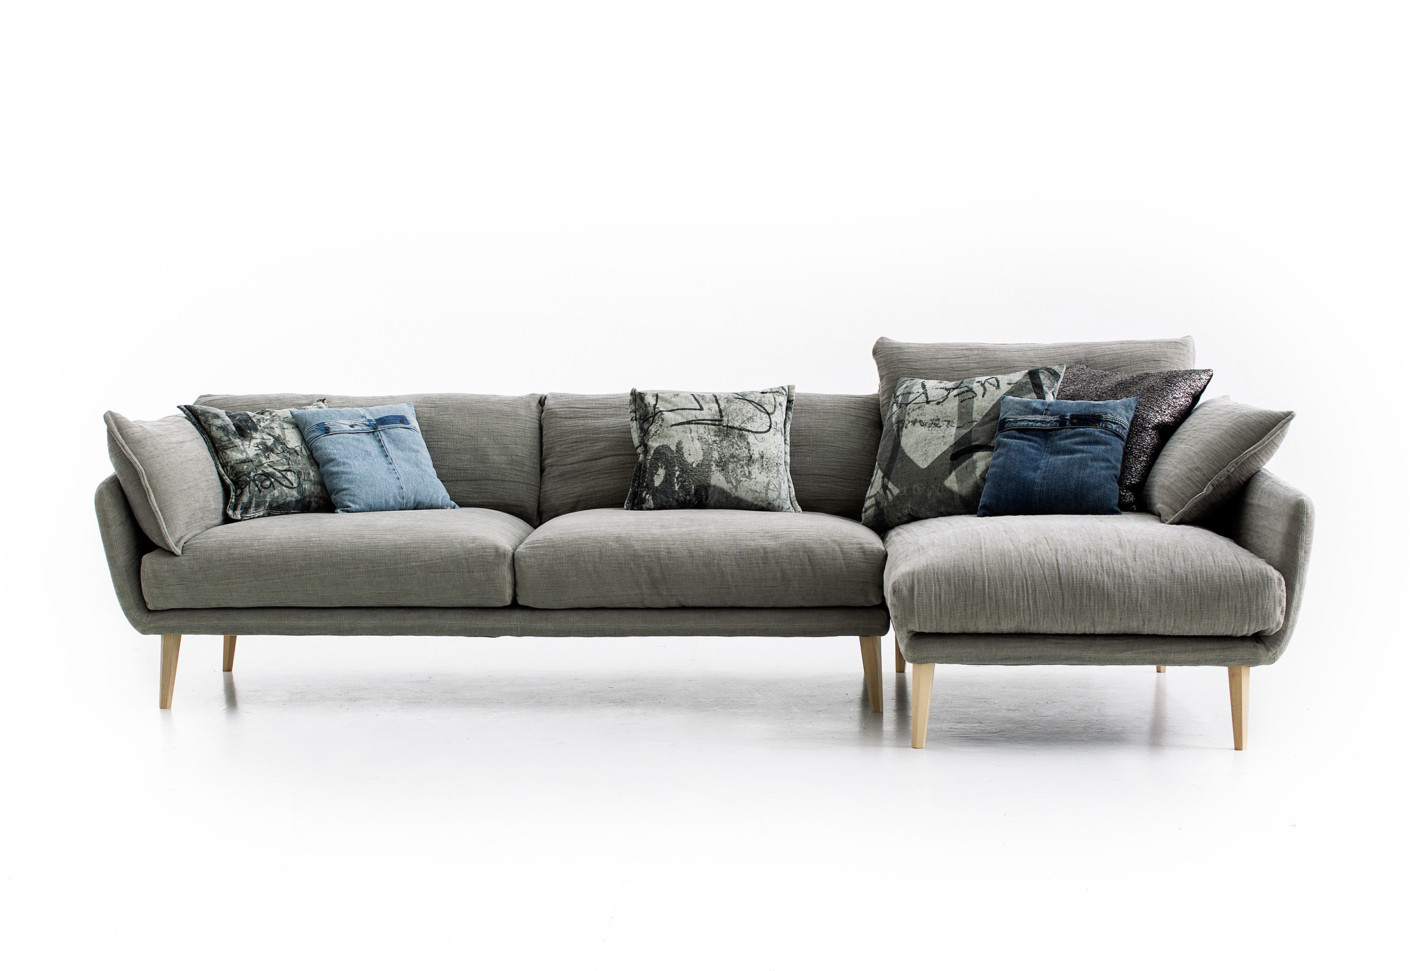 diesel collection sister ray sofa by moroso stylepark. Black Bedroom Furniture Sets. Home Design Ideas